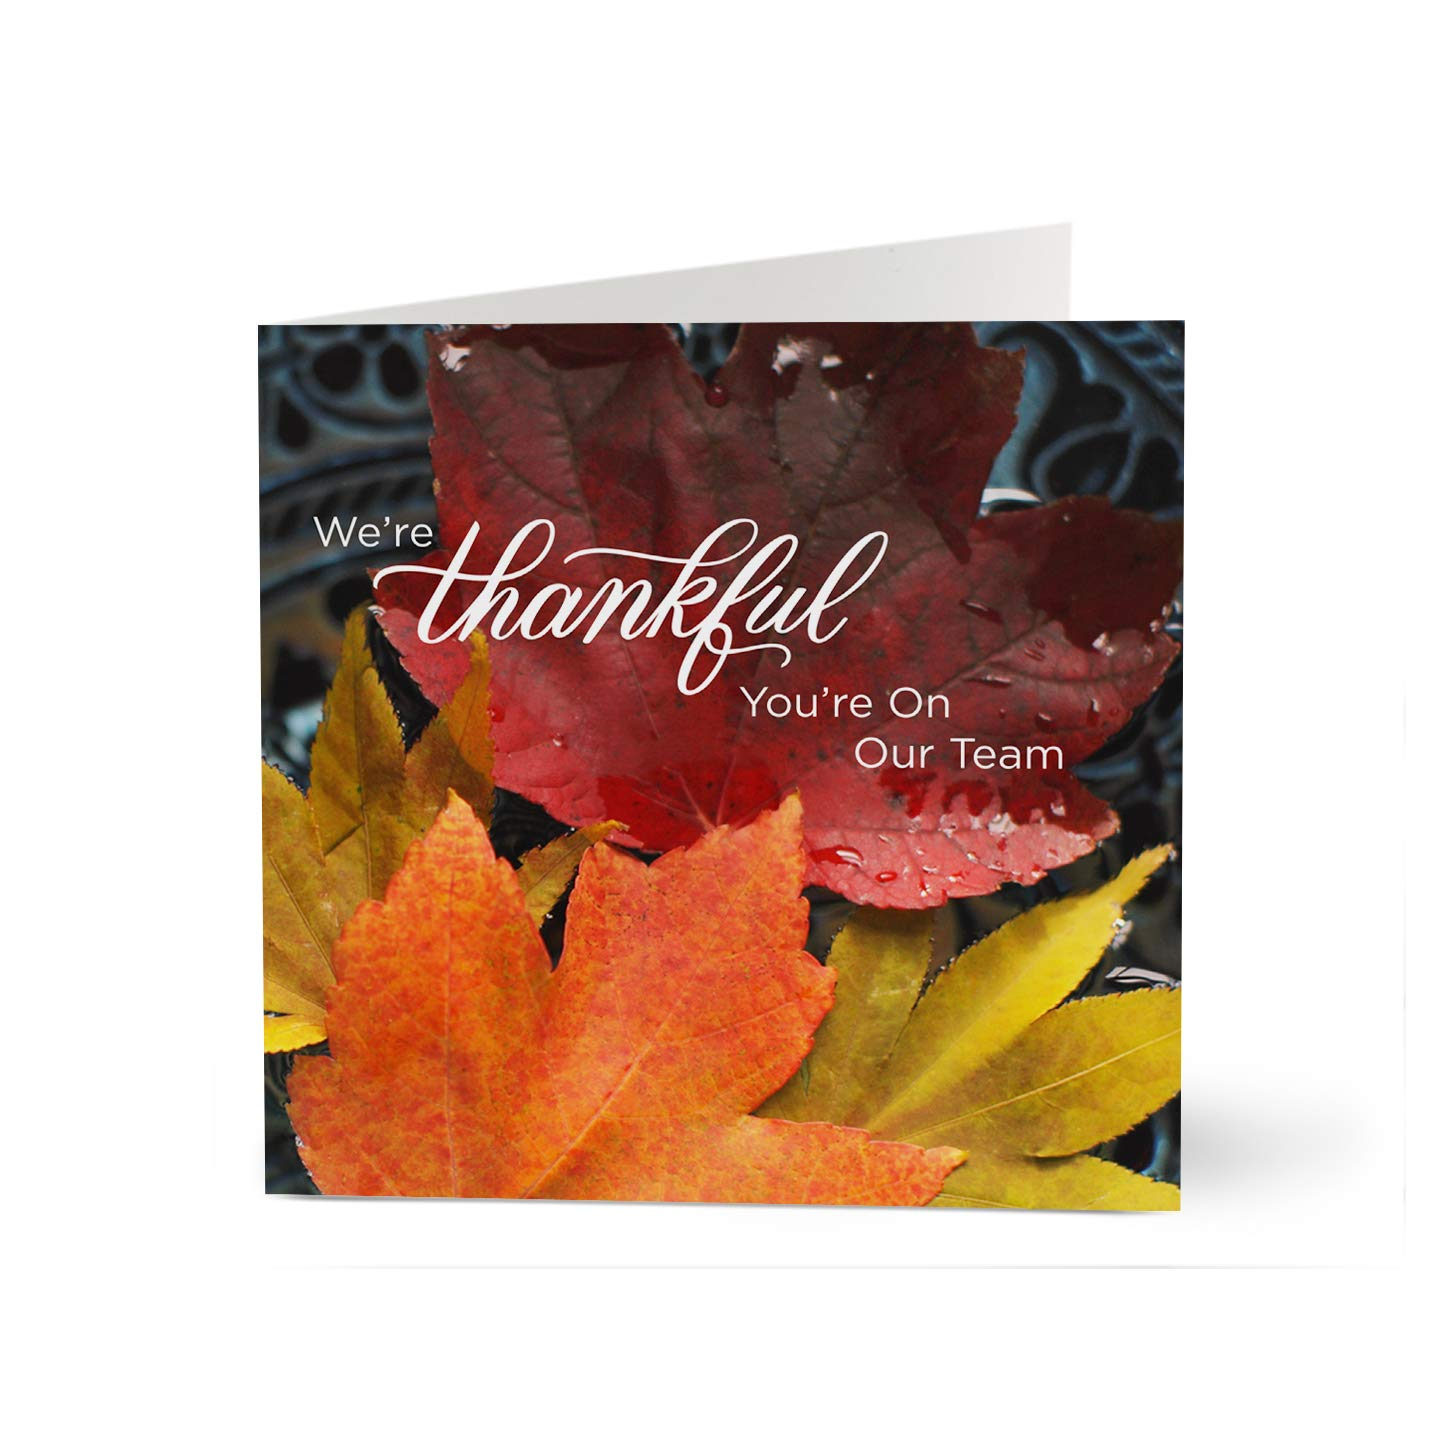 Hallmark Business Thanksgiving Cards for Employee Appreciation (Thankful Team) (Pack of 25 Greeting Cards) by Hallmark Business Connections